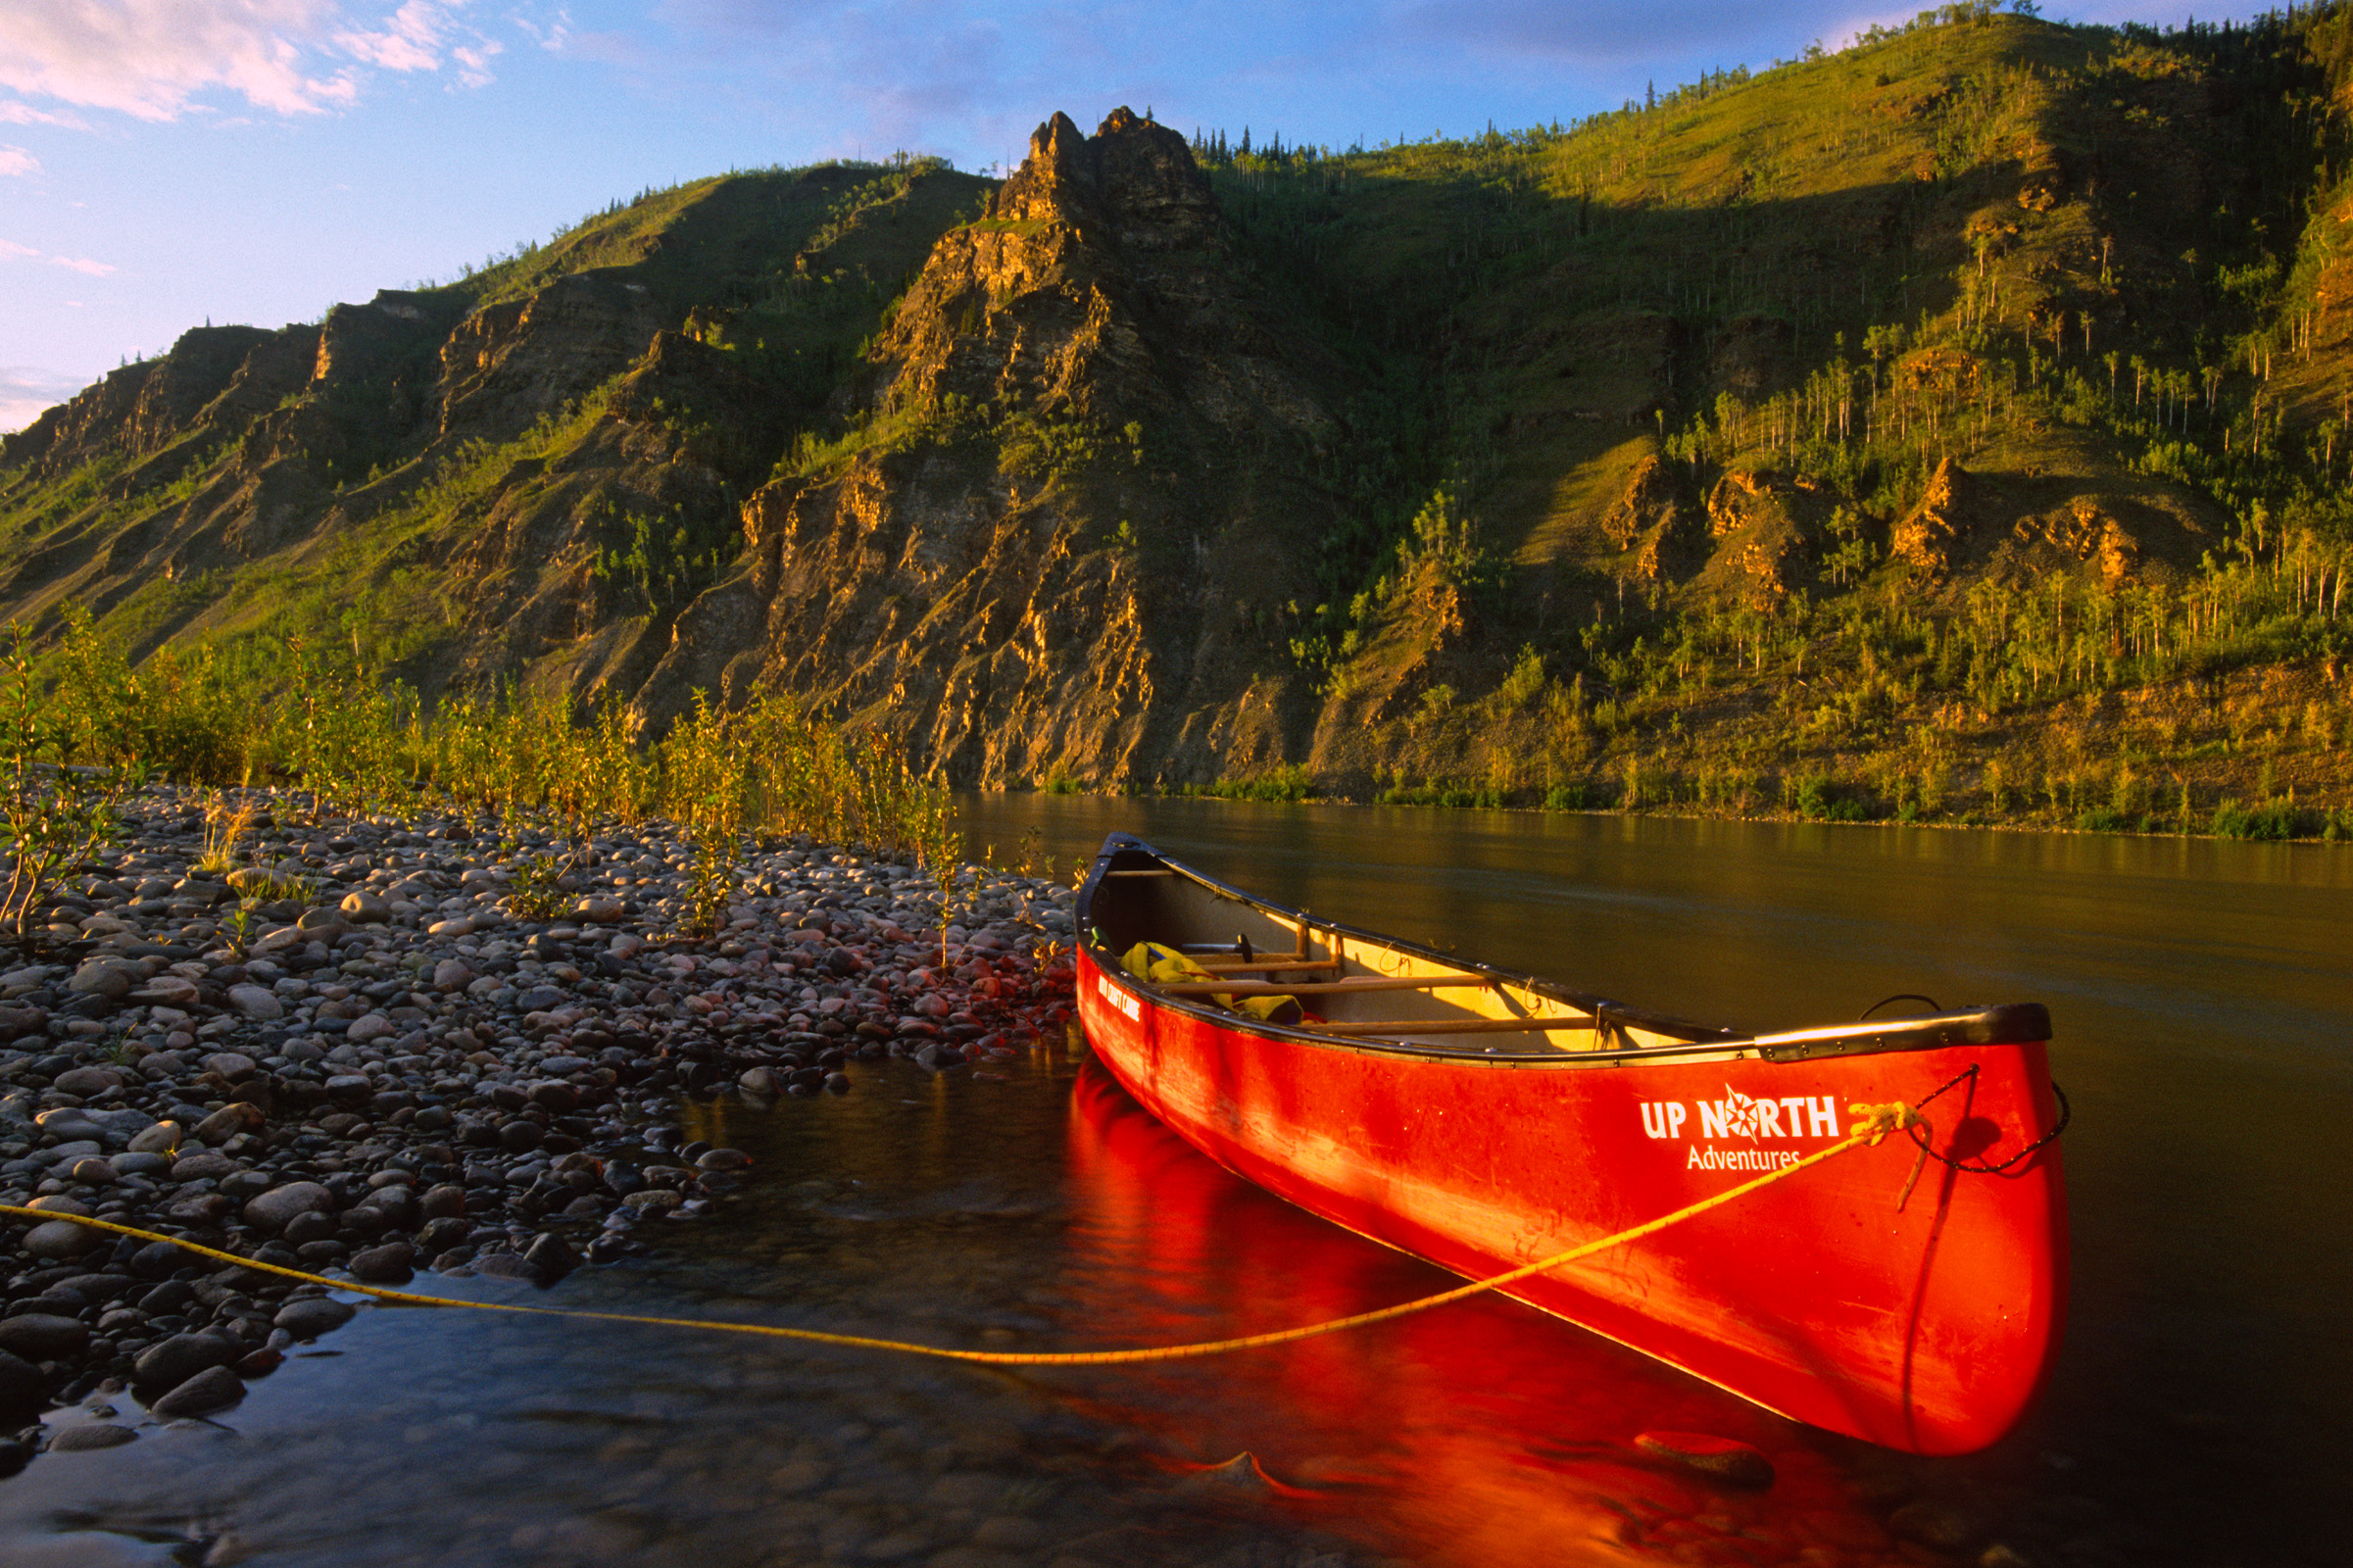 A red canoe beneath cliffs along the Yukon River